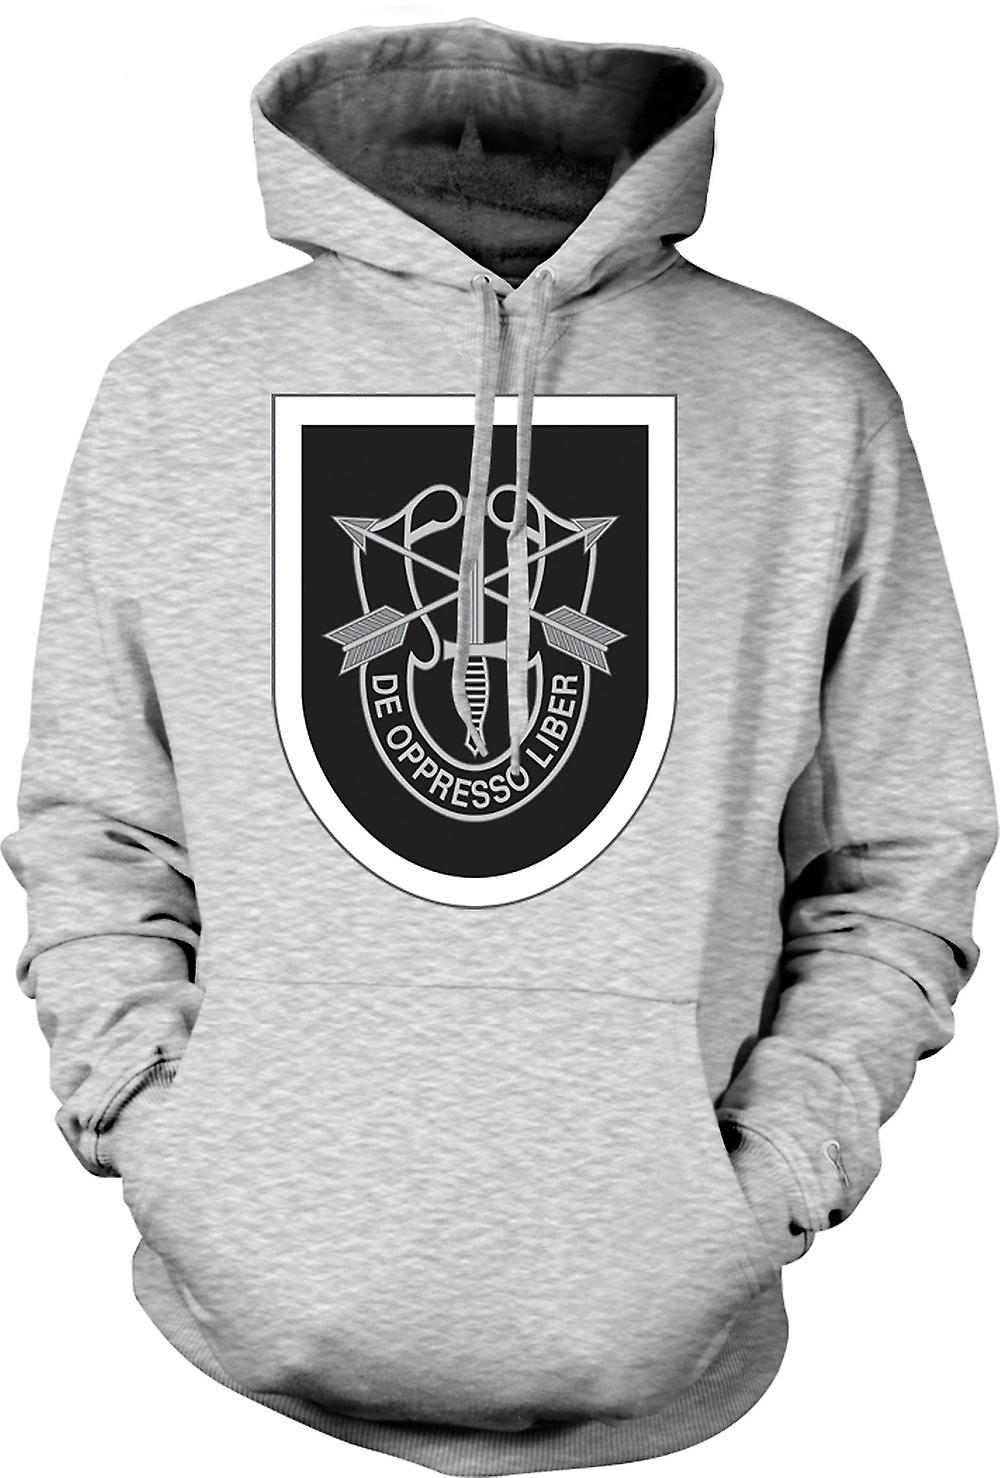 Mens Hoodie - US Special Forces - De Oppresso Liber